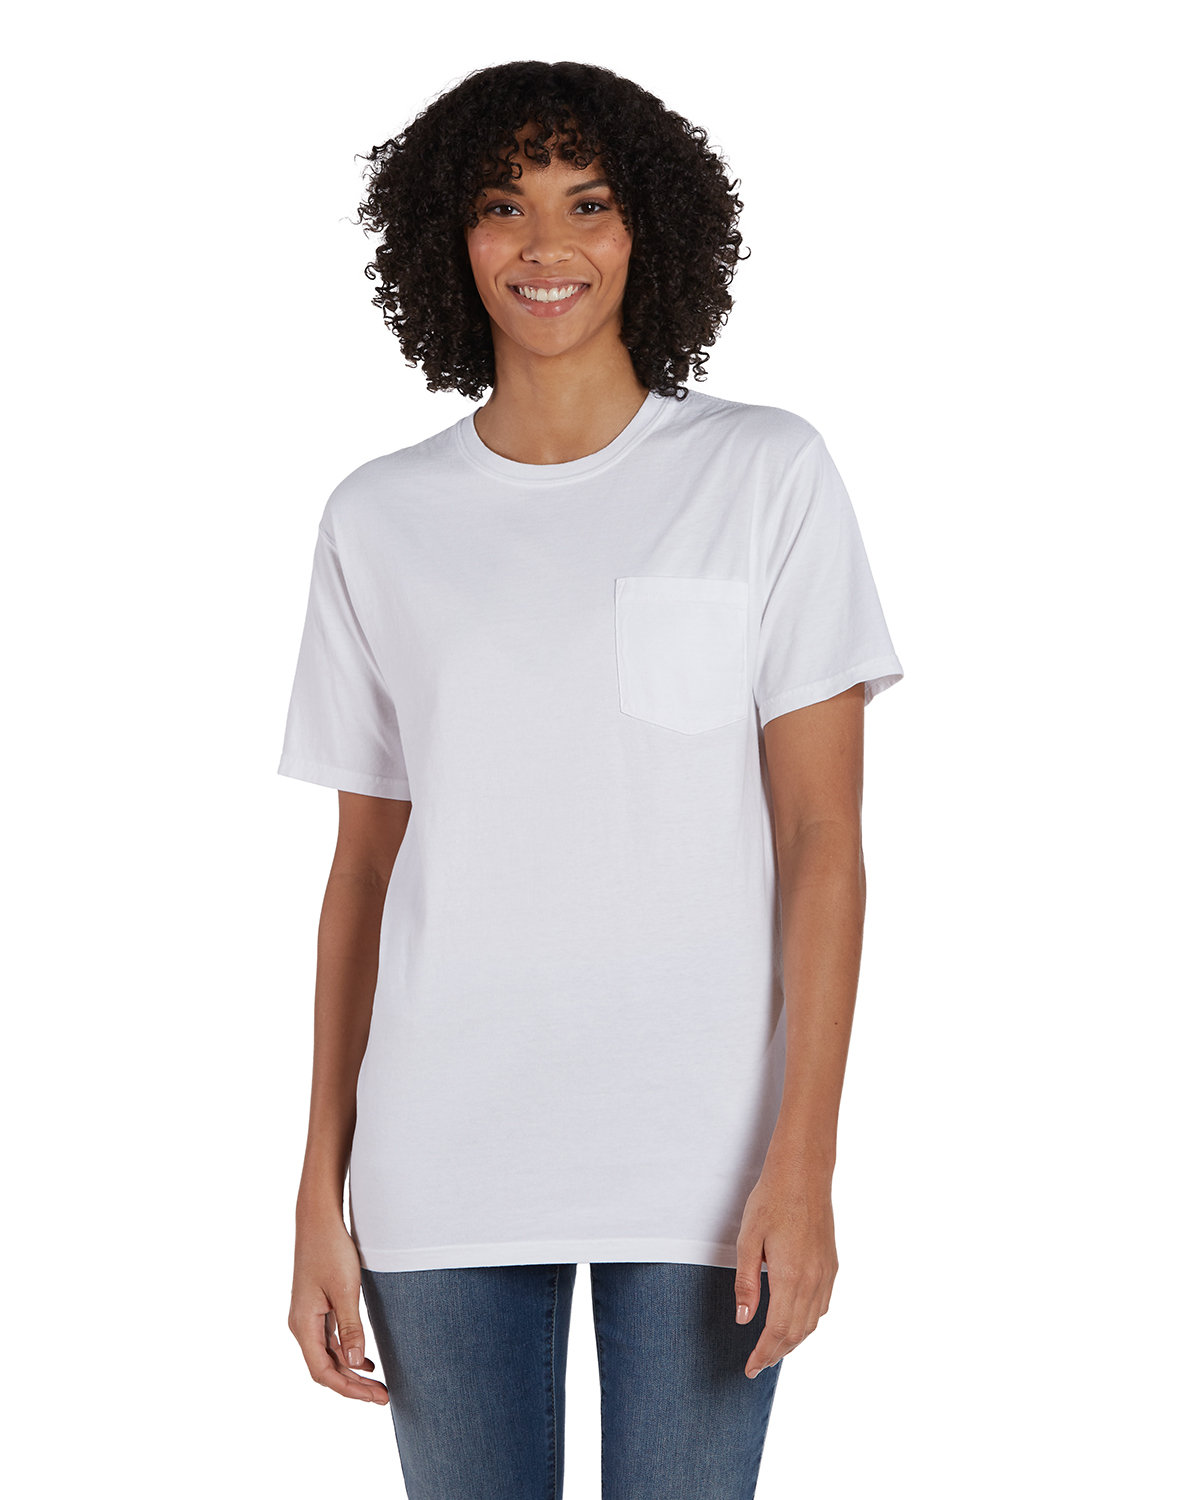 ComfortWash by Hanes Unisex Garment-Dyed T-Shirt with Pocket WHITE